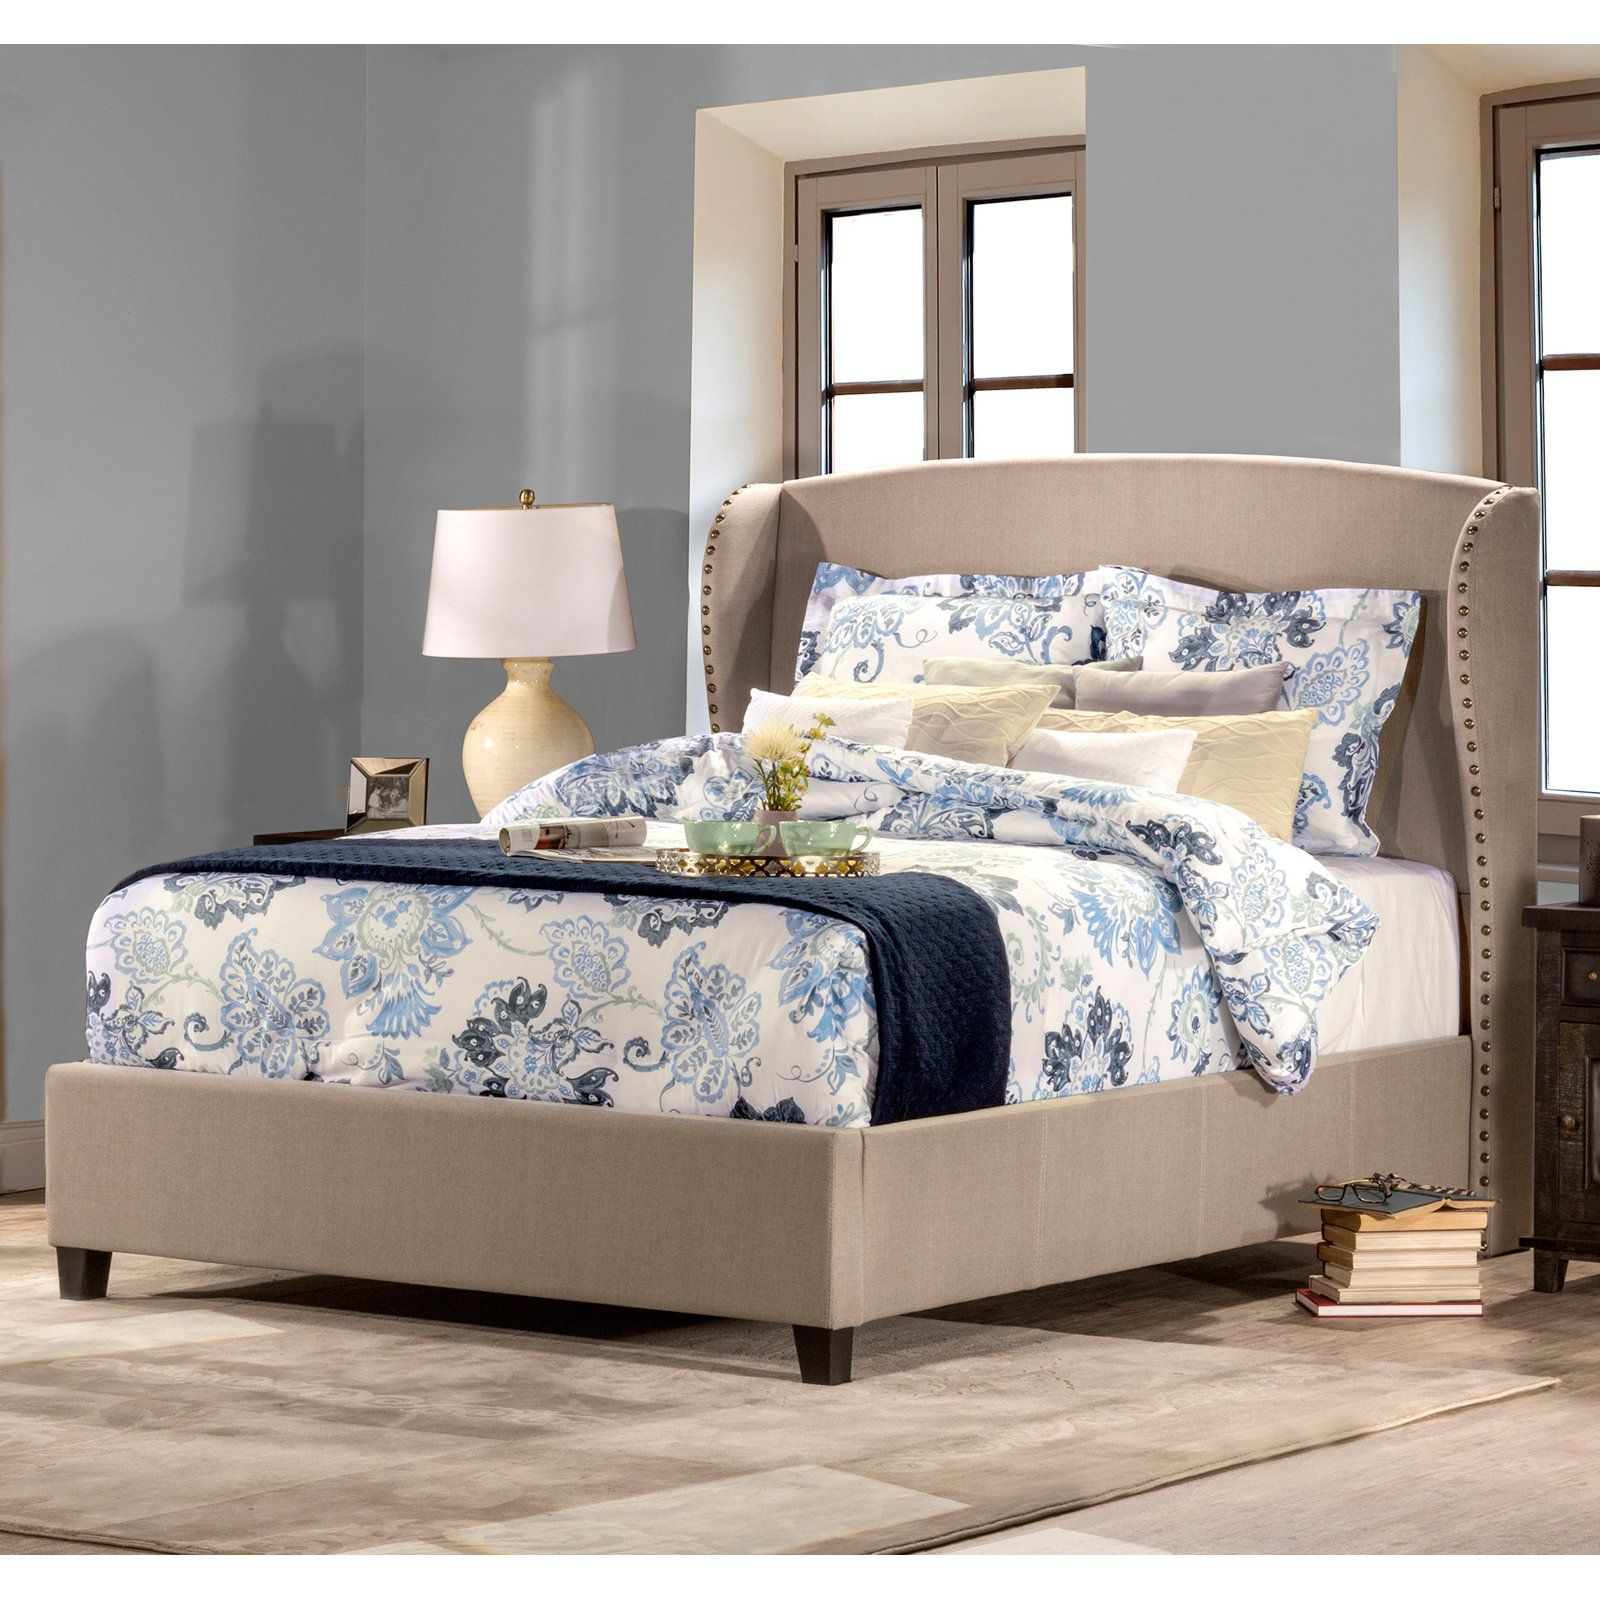 Hillsdale Furniture Lisa Wingback Upholstered Panel Bed